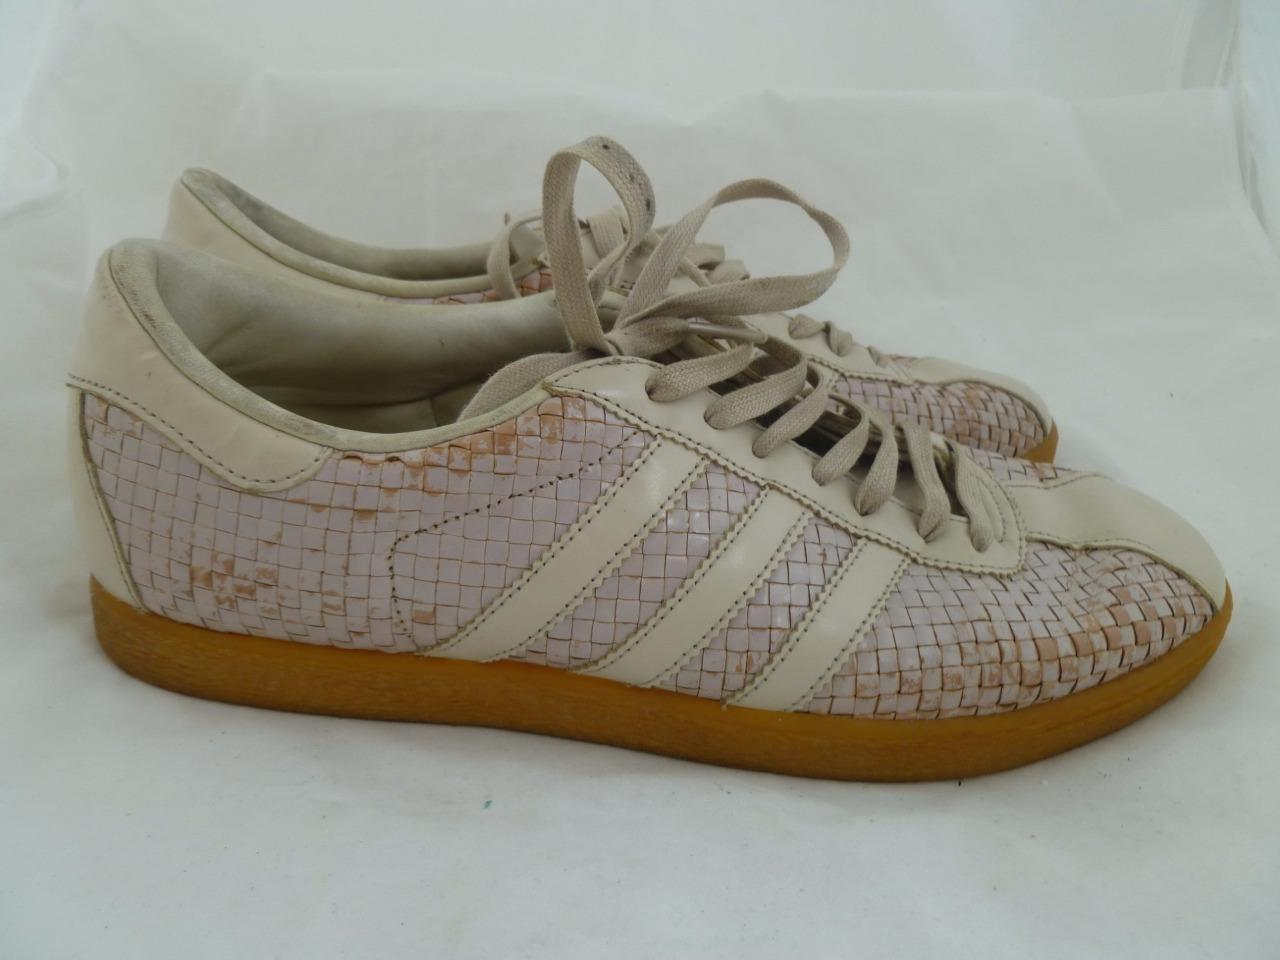 ADIDAS ORIGINALS TOBACCO WEAVE USED MEN LIGHT PINK SNEAKERS 2002